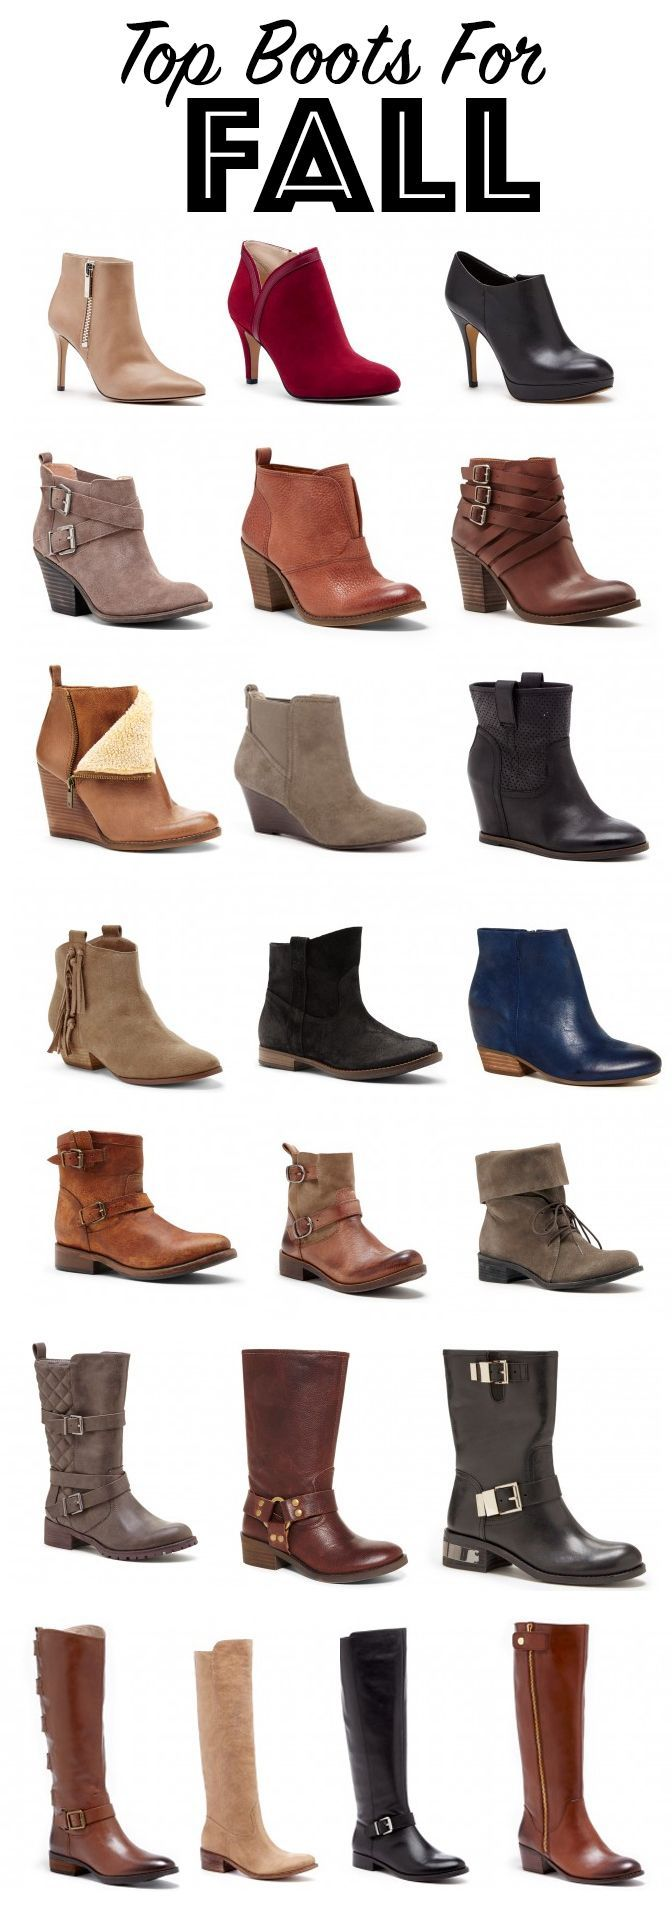 Top Boots for Fall - The best selection of Boots for Fall, Autumn, Winter, Beyond.